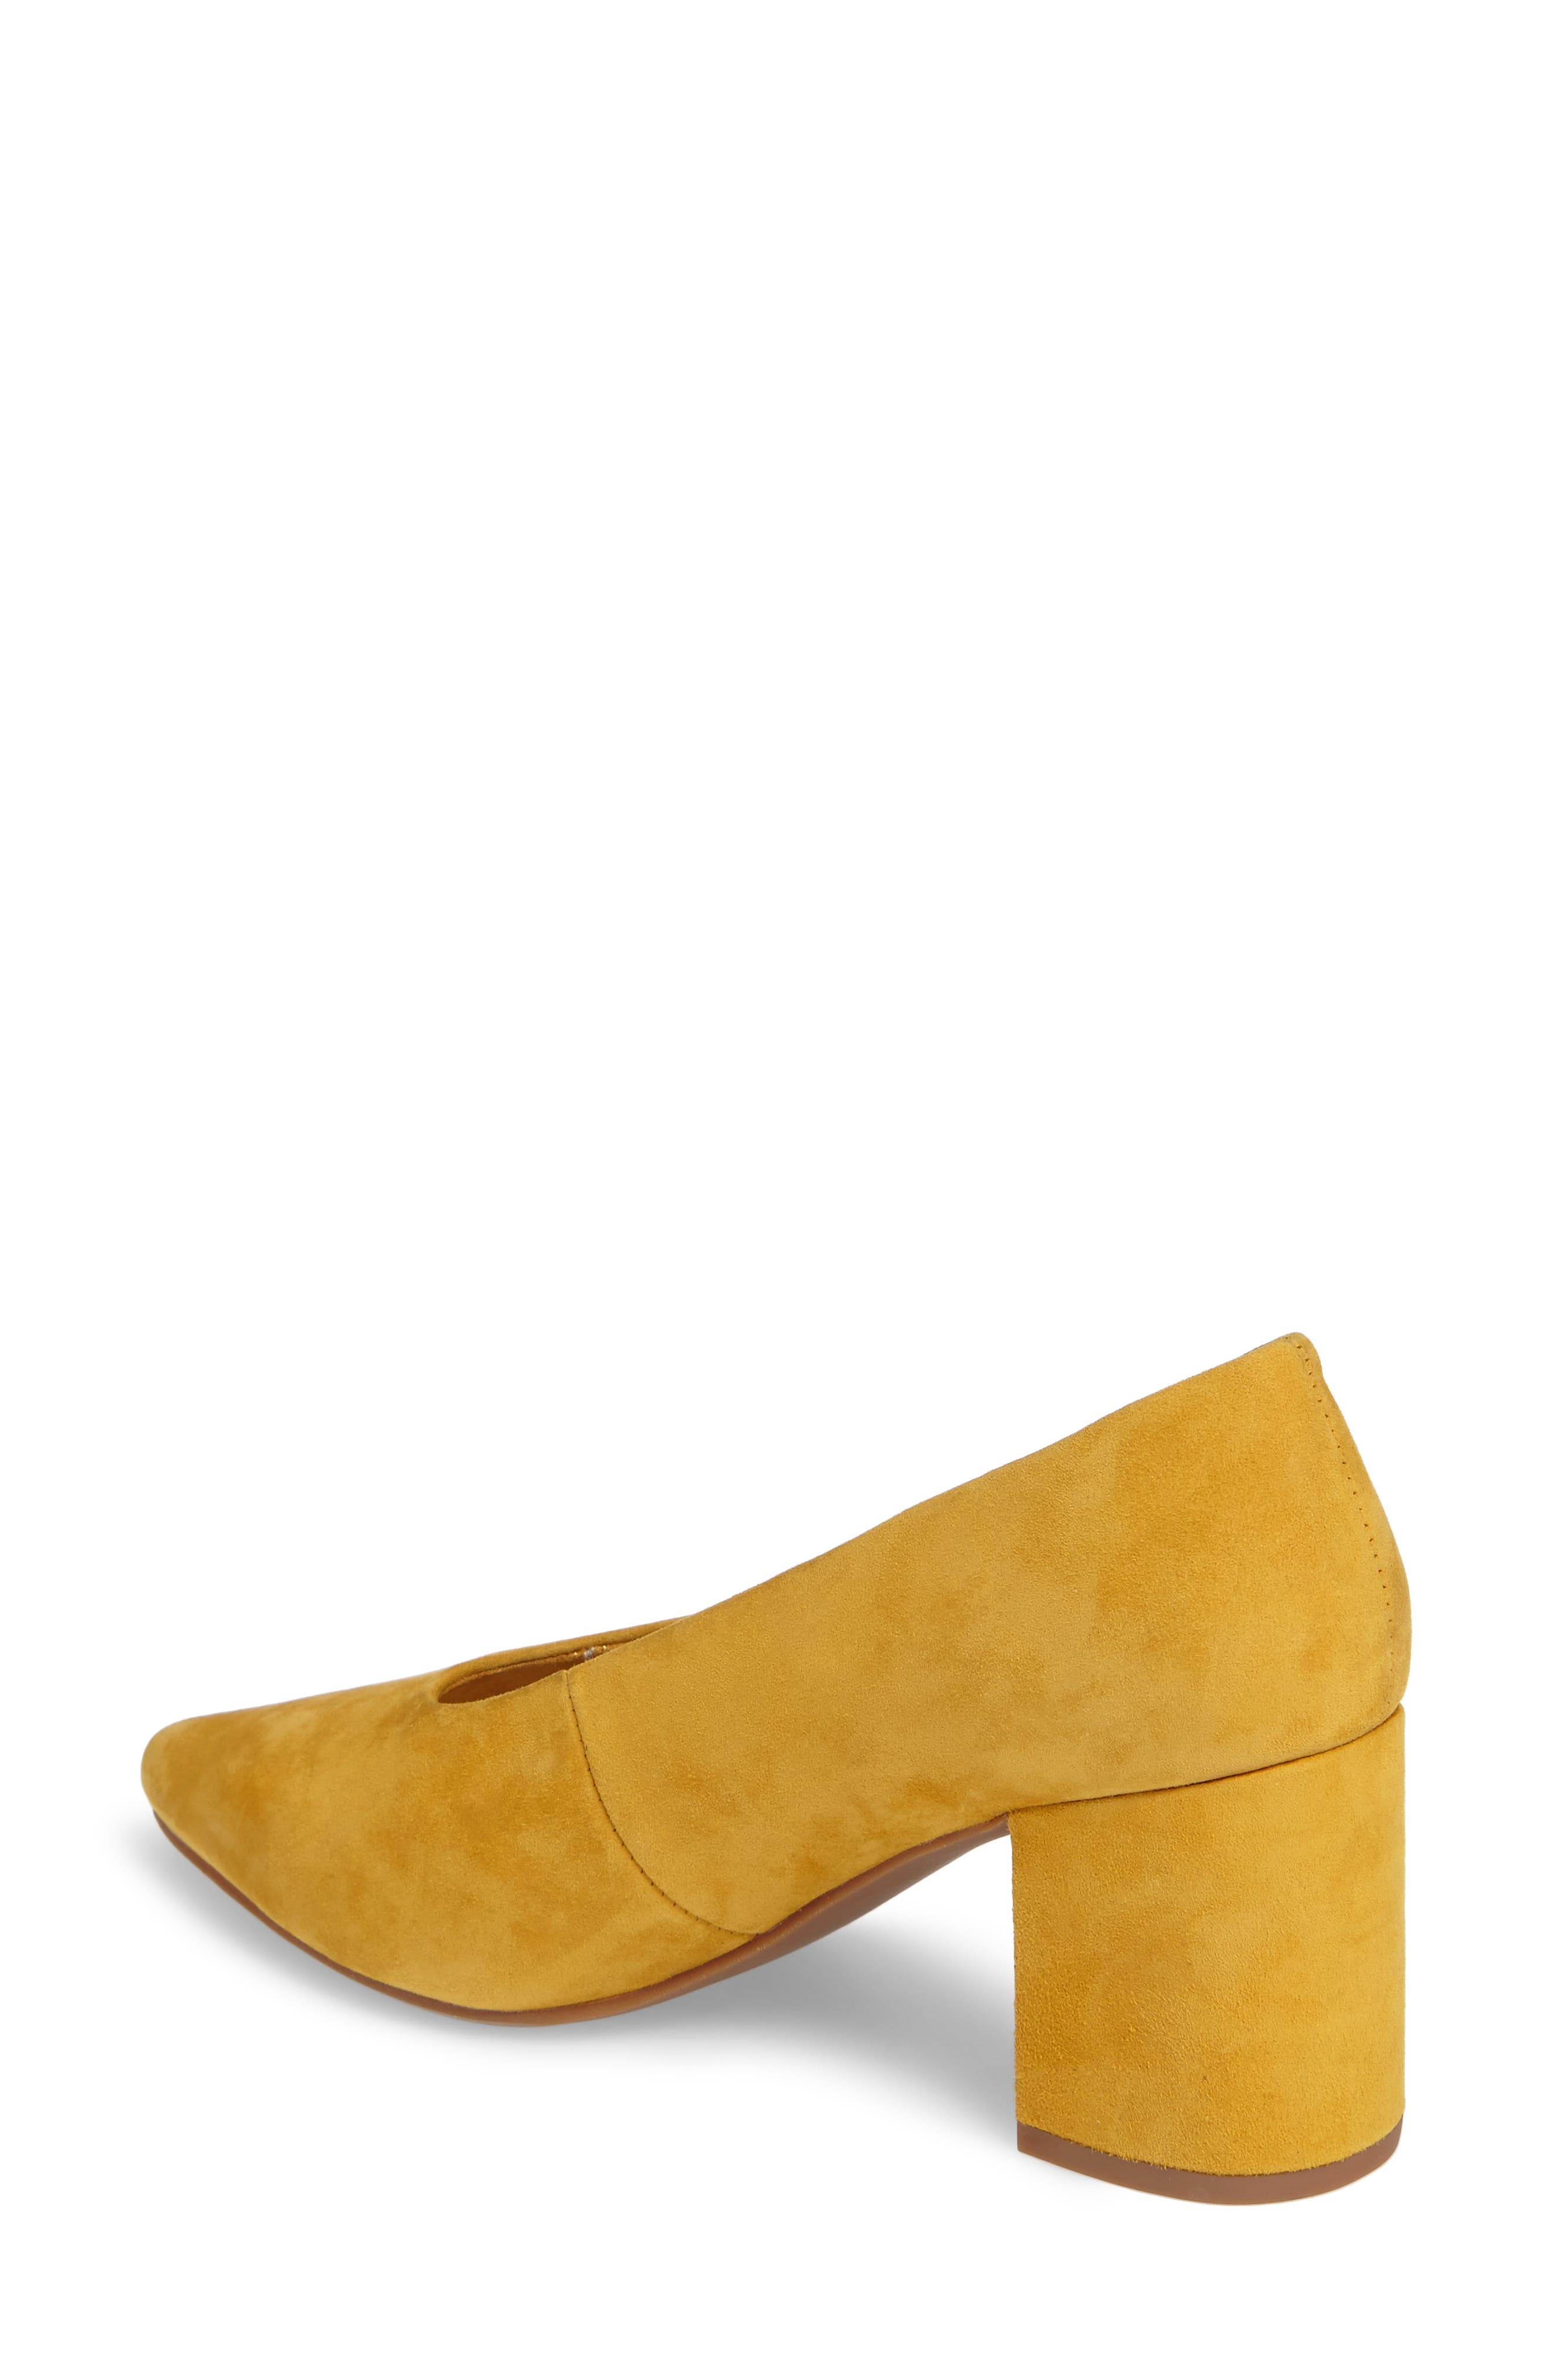 Rehearse Pointy Toe Pump,                             Alternate thumbnail 2, color,                             MUSTARD SUEDE